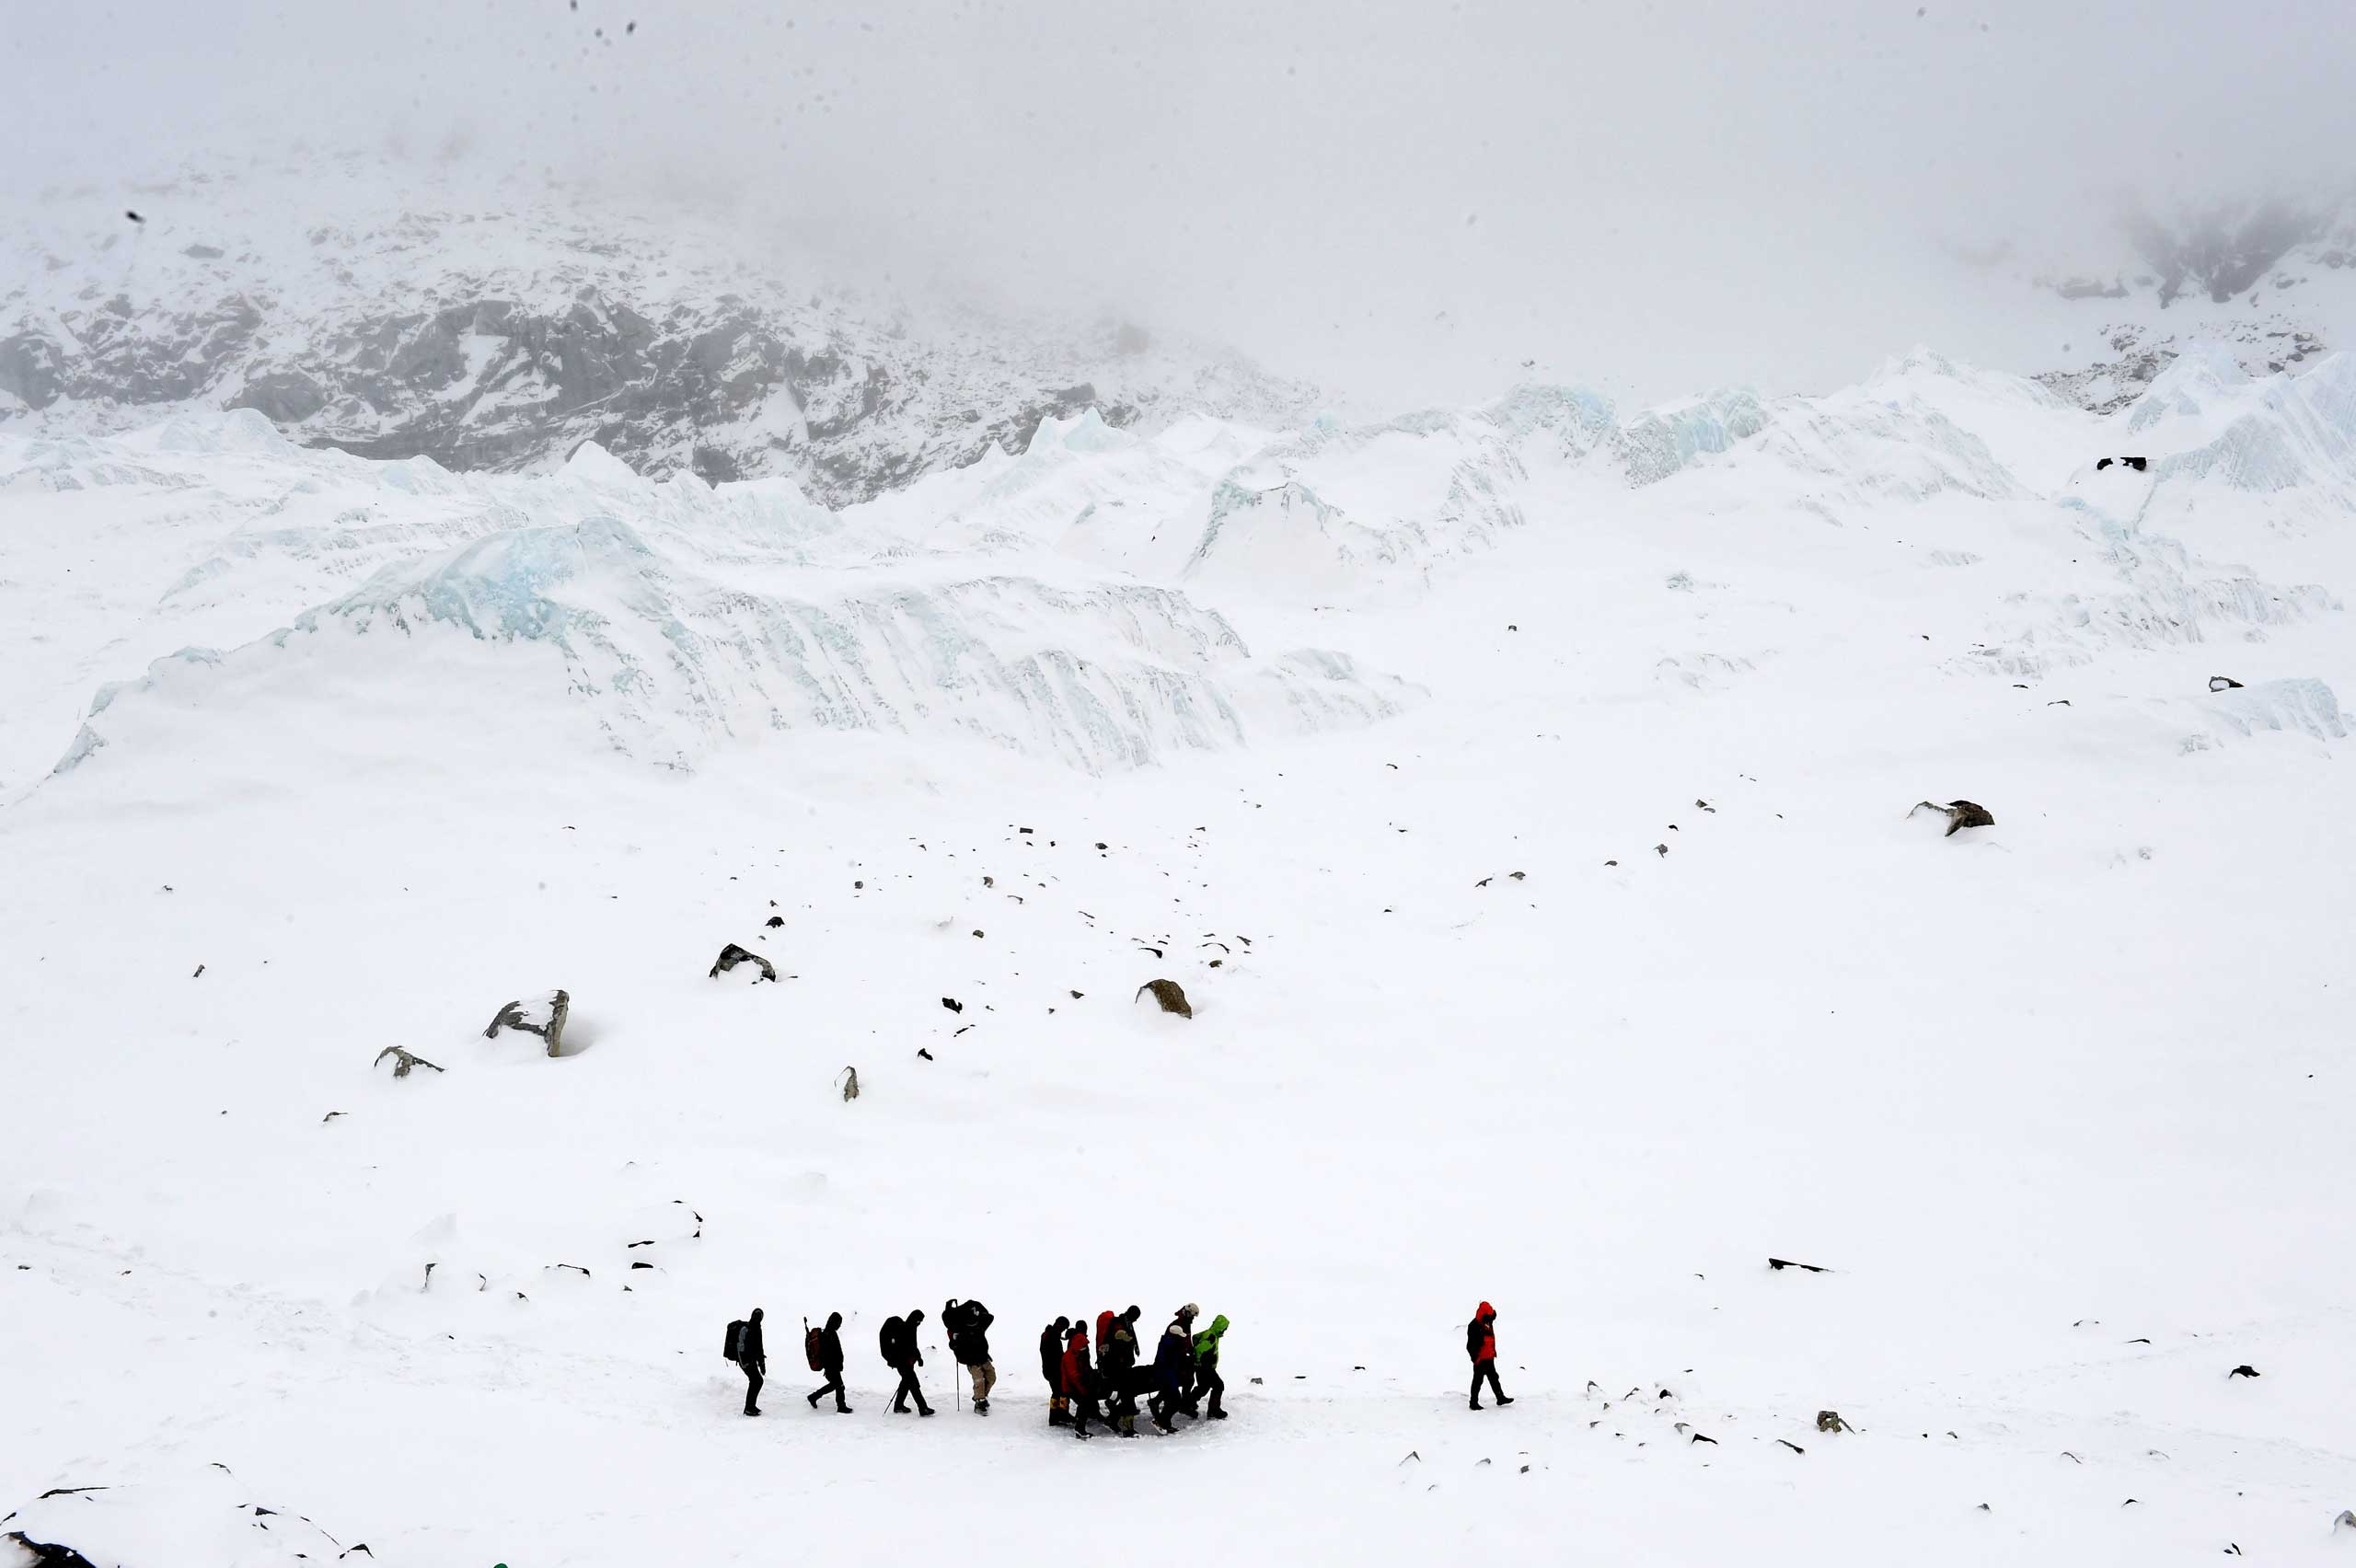 Rescuers carry an injured sherpa after the avalanche that was triggered by an earthquake outside Kathmandu, Nepal, on April 25, 2015.